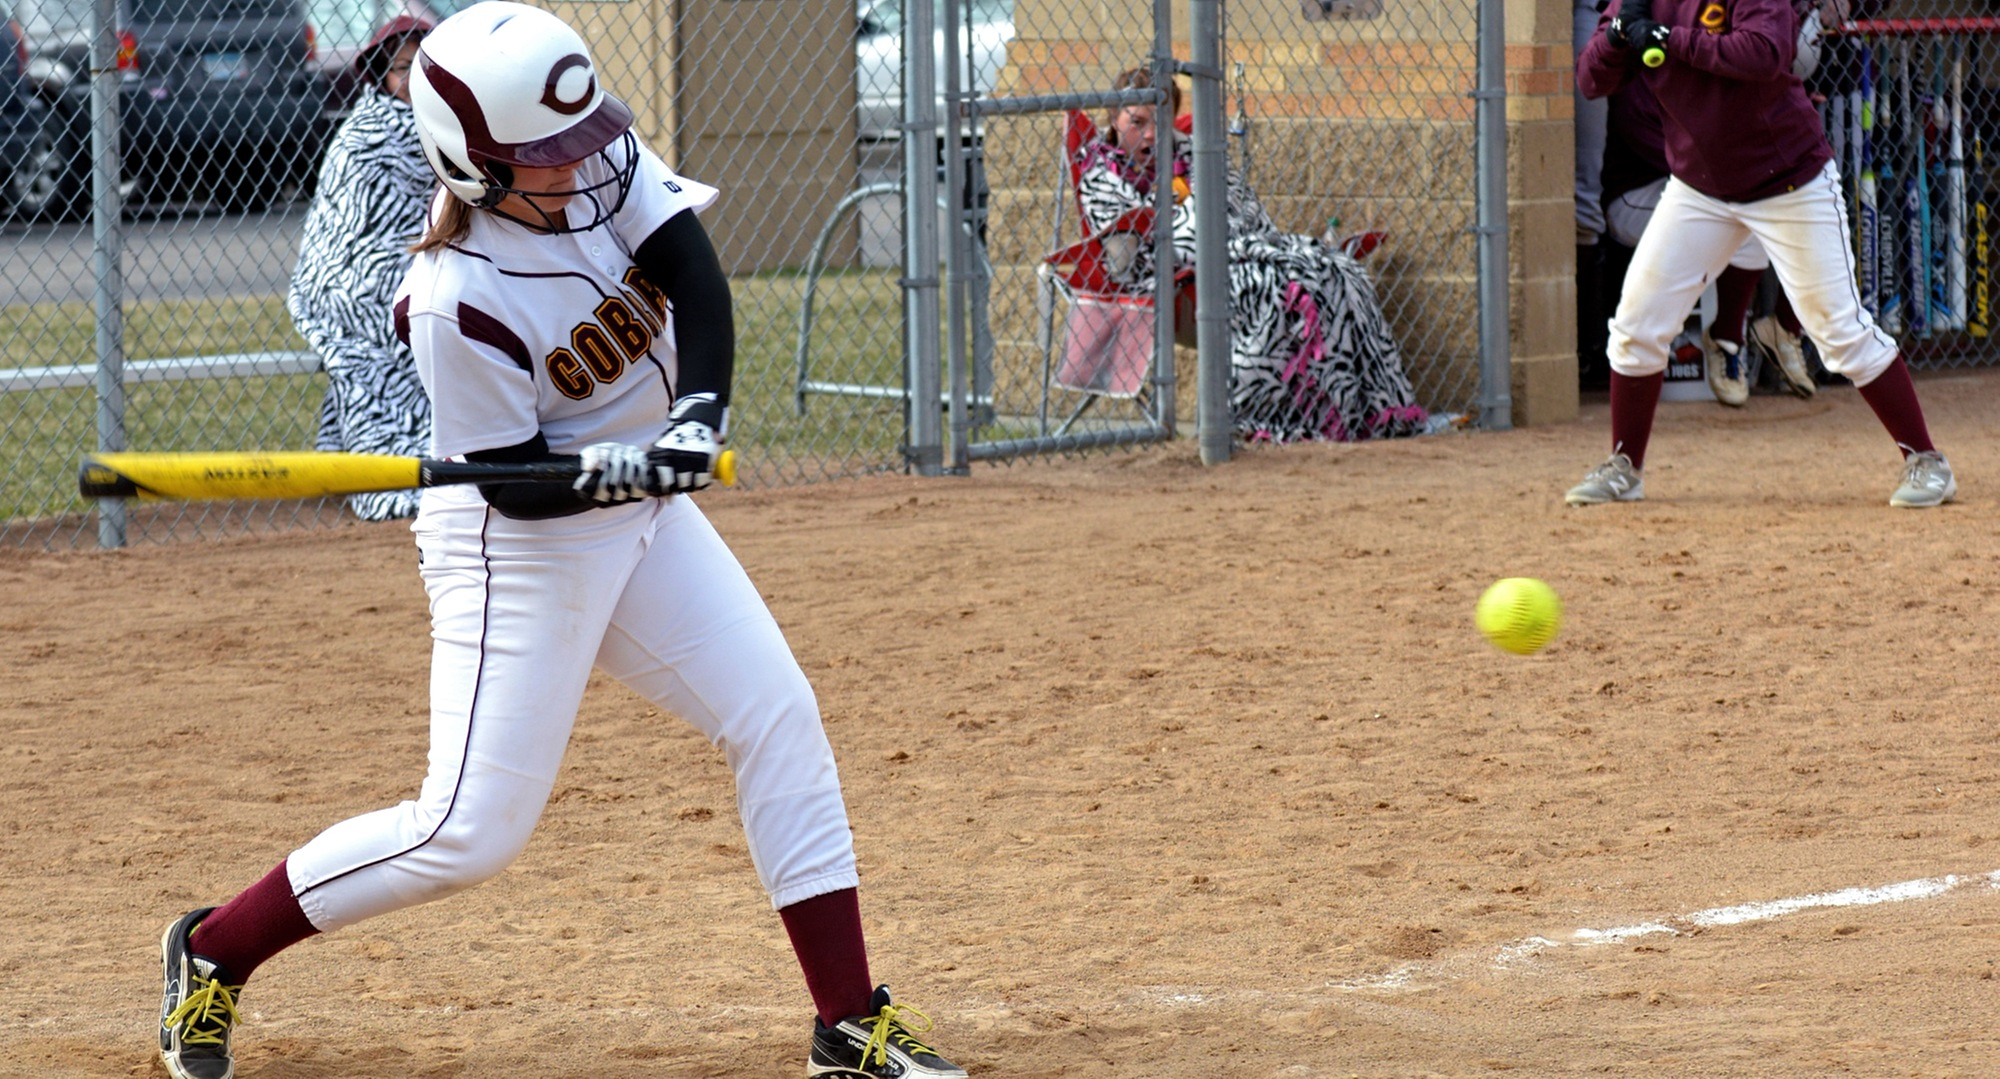 Sophomore Nicole Johannes had hits in both games and helped the Cobbers post wins over Finlandia and Northland.